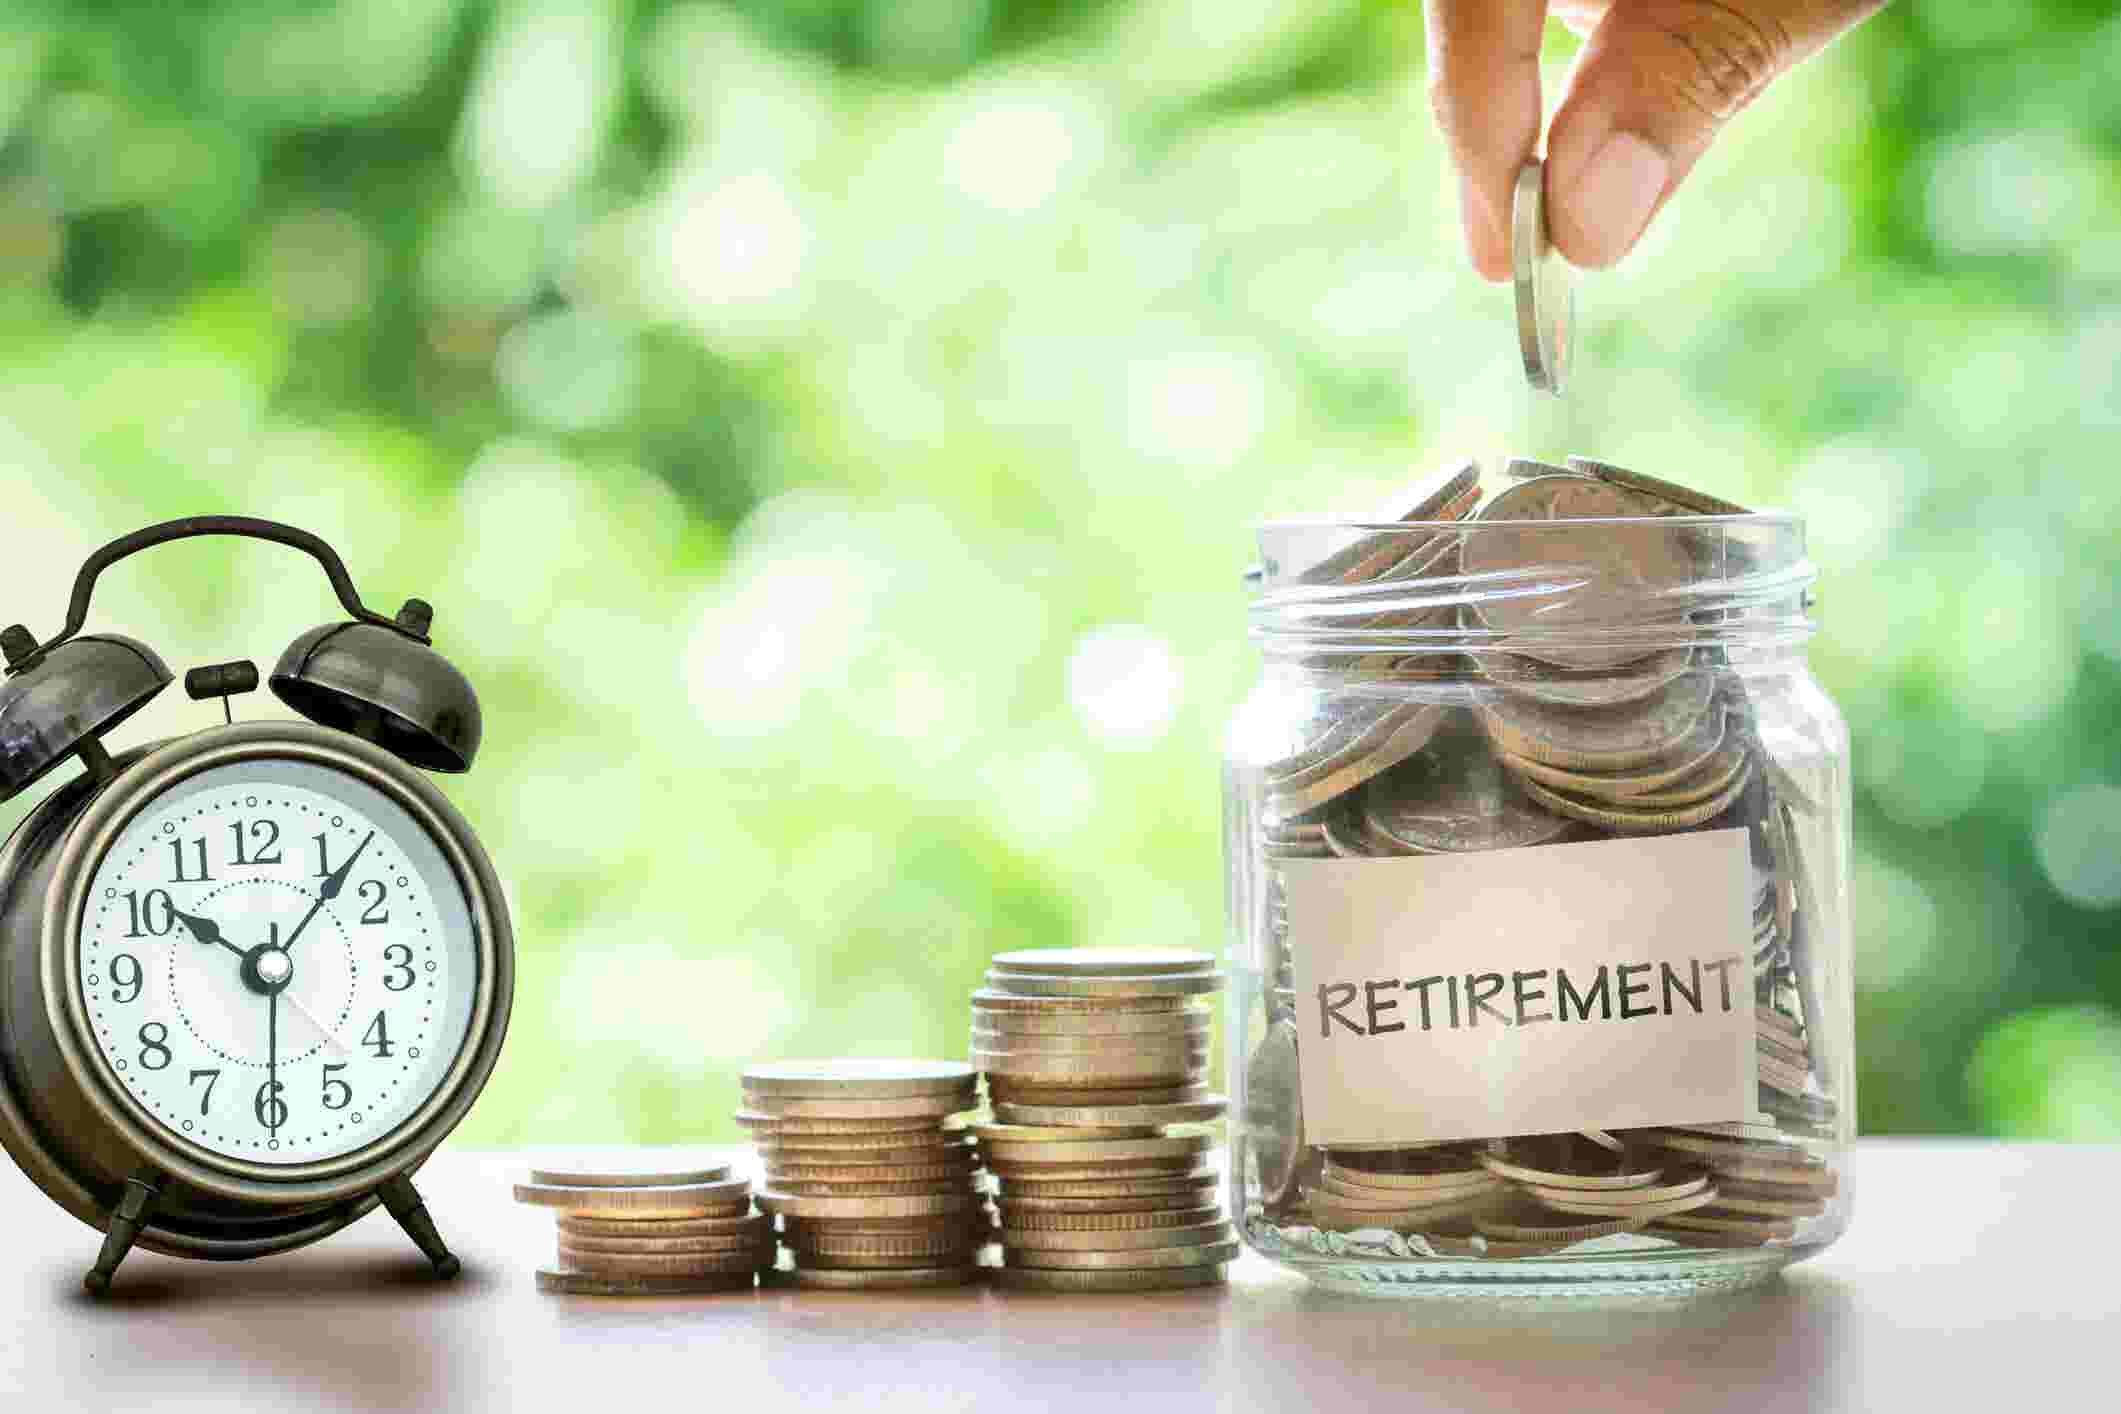 Want to retire early? Set FIRE to your personal finances